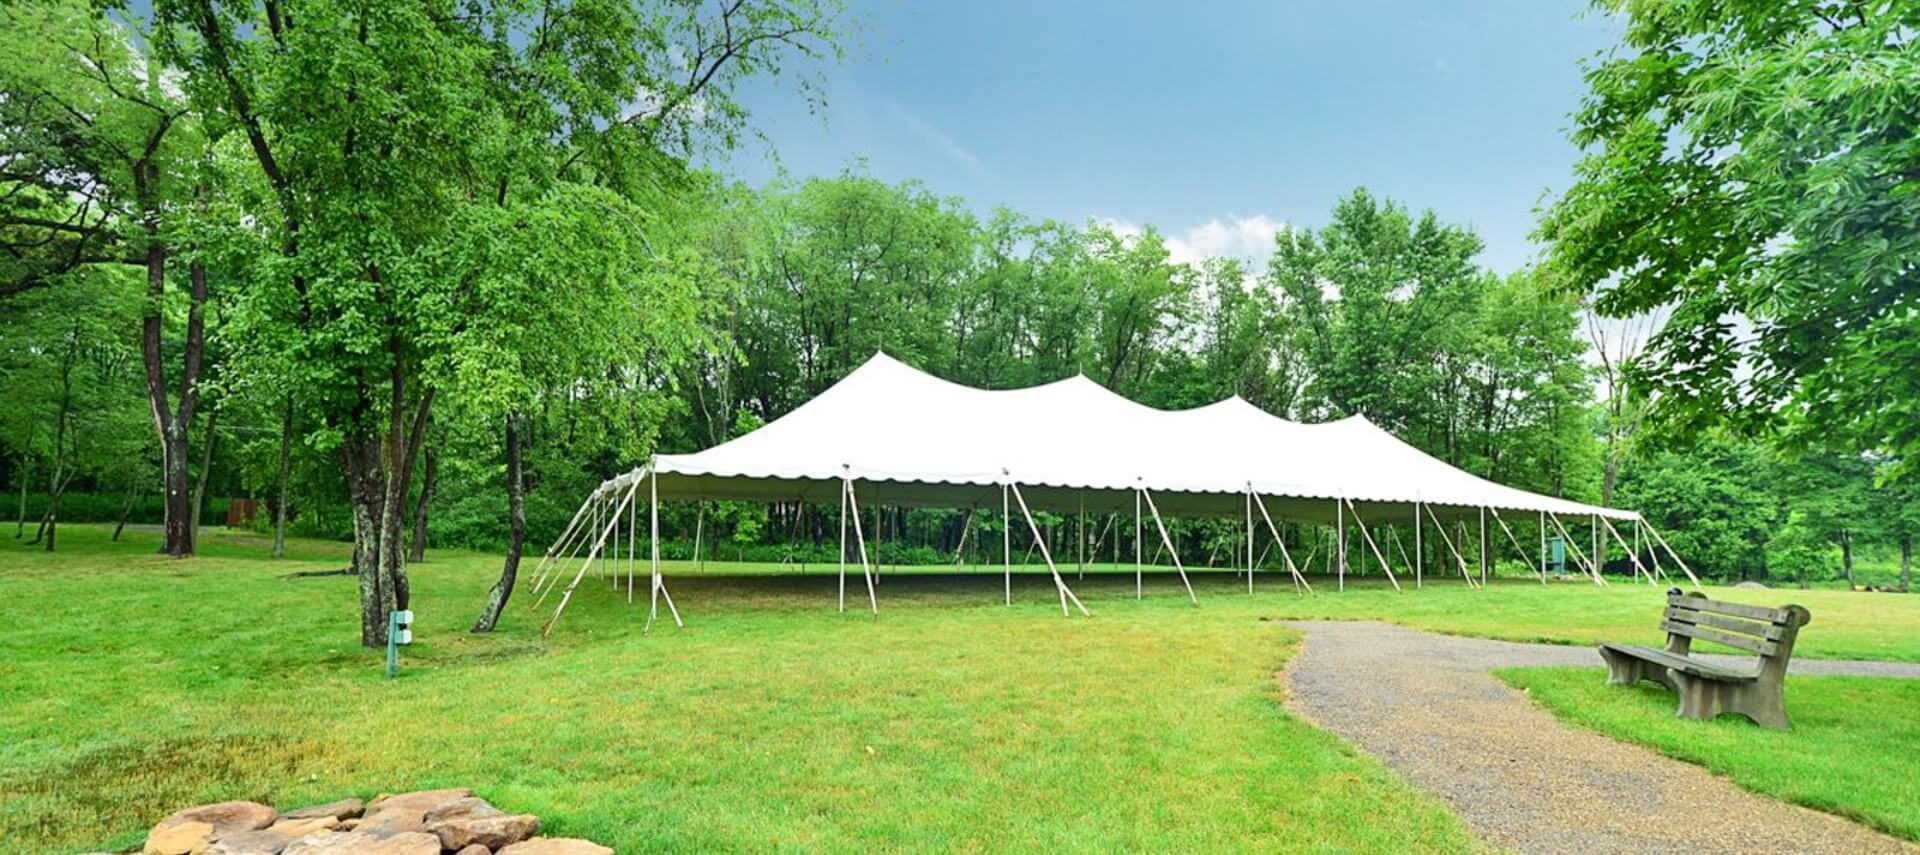 Large white outdoor event tent set up on a lawn surrounded by tall trees